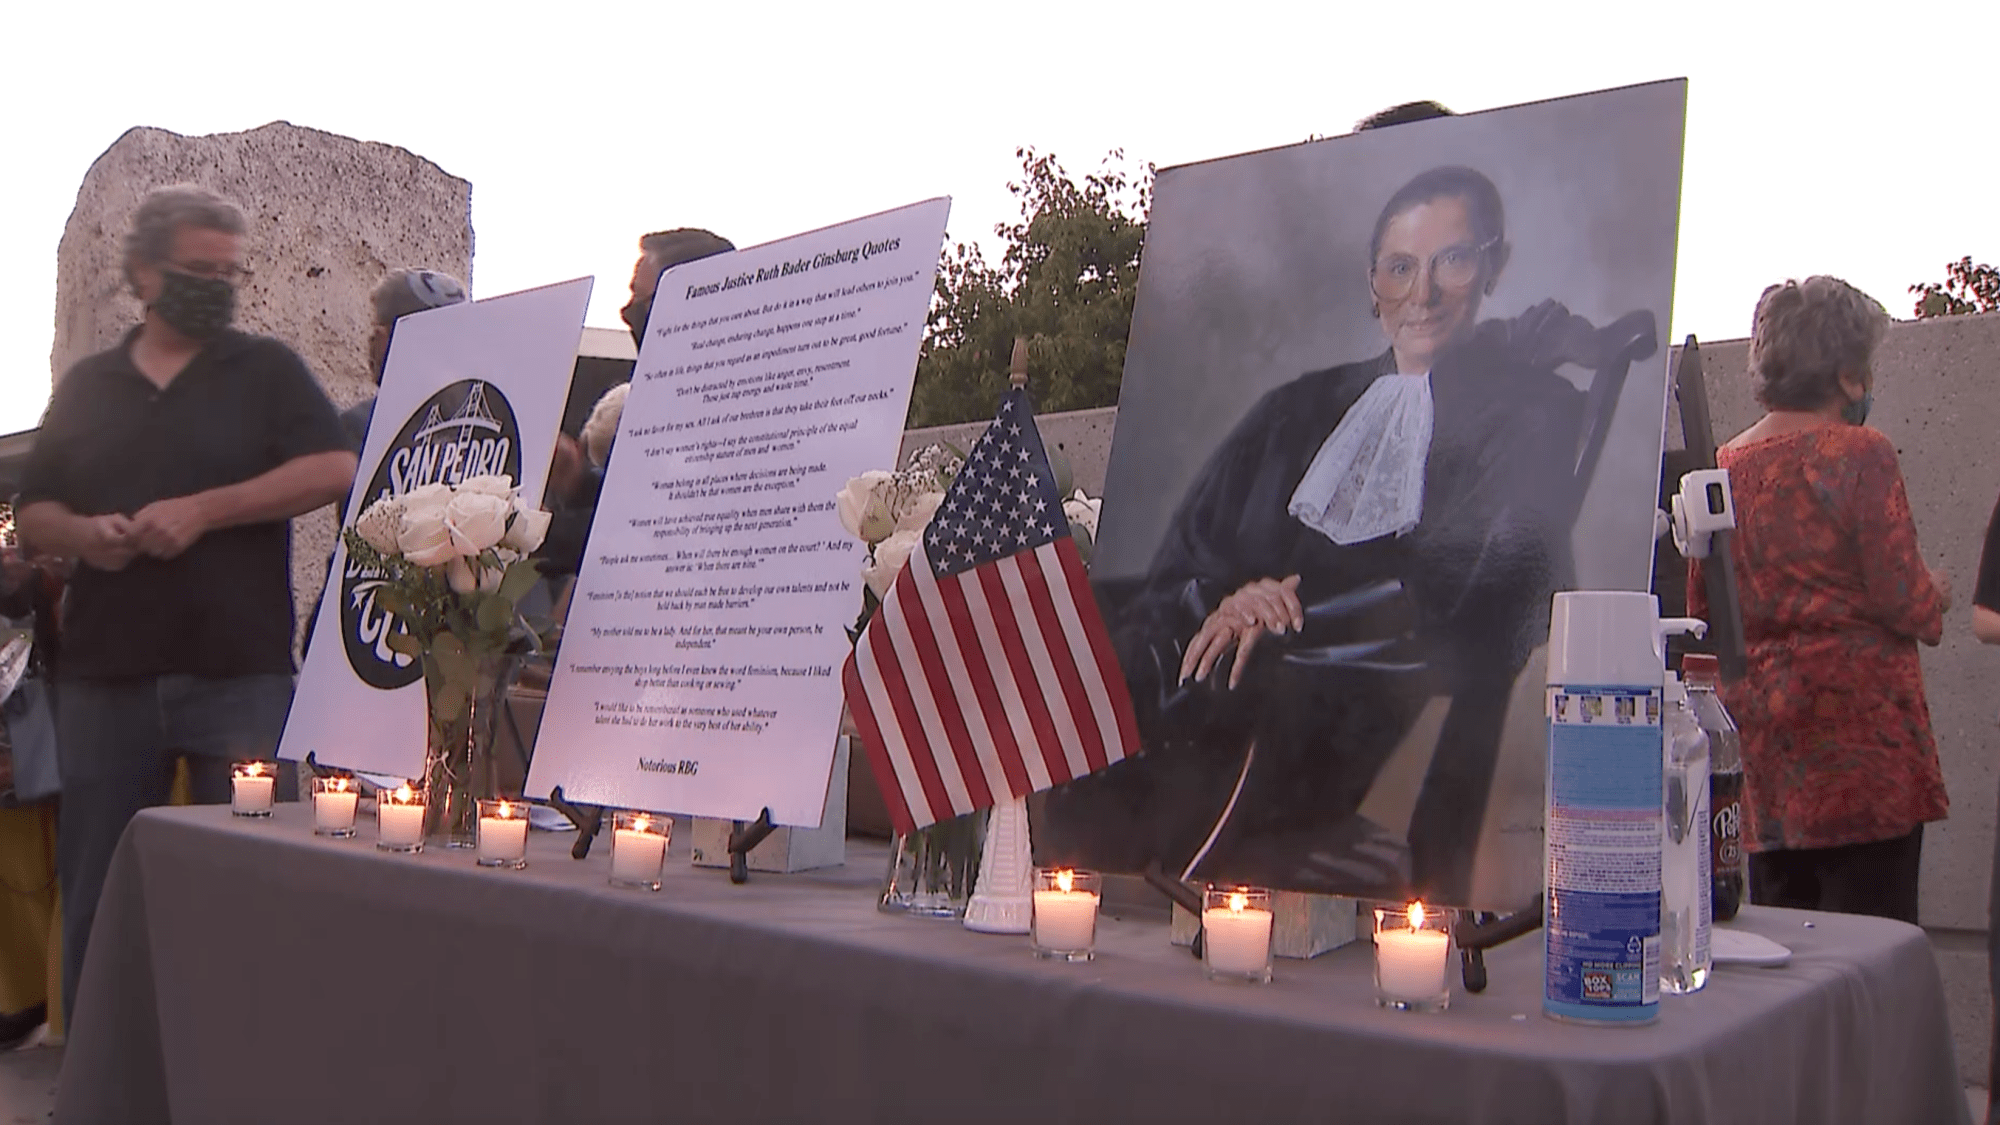 Justice Ruth Bader Ginsburg is honored in a candlelight vigil in San Pedro on Sept. 22, 2020. (KTLA)